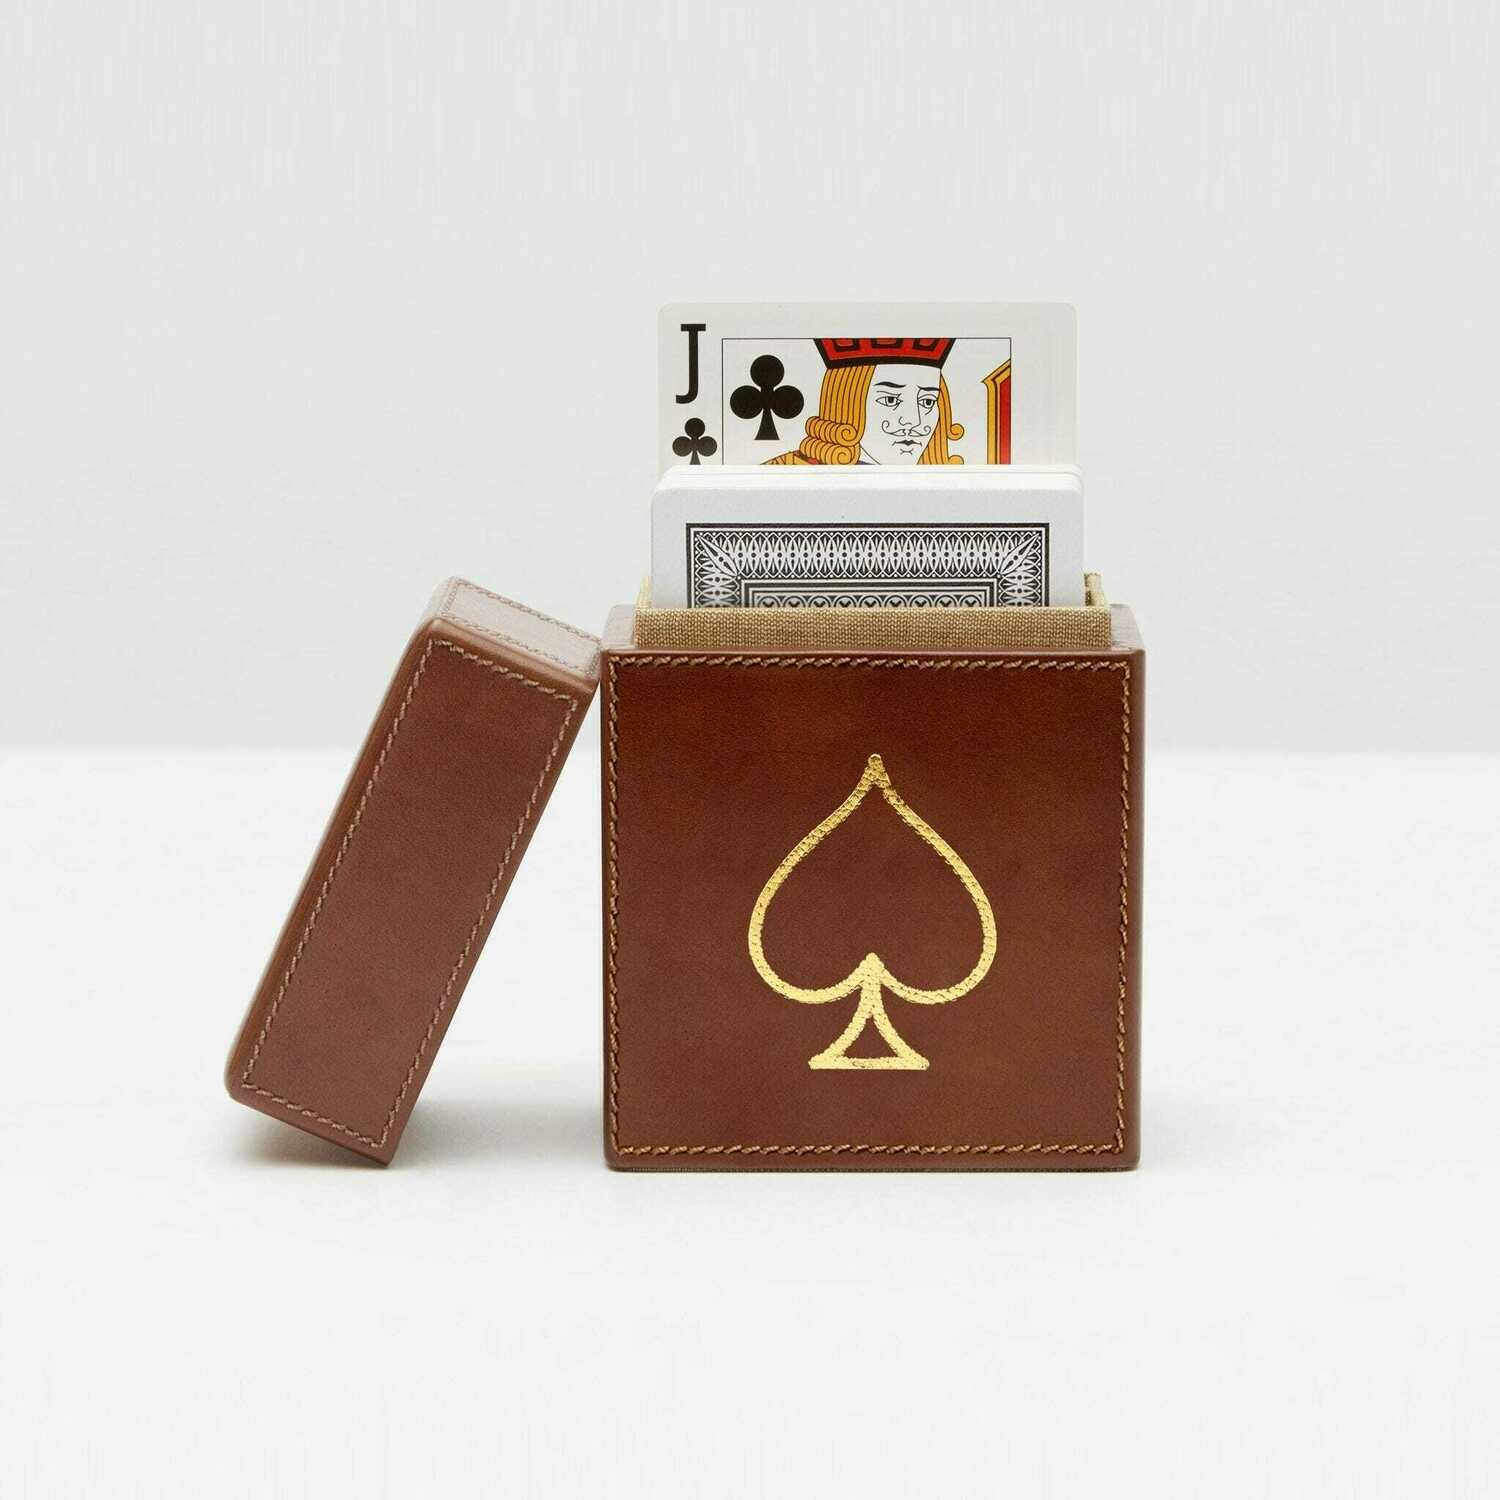 Lg Playing Card In Box